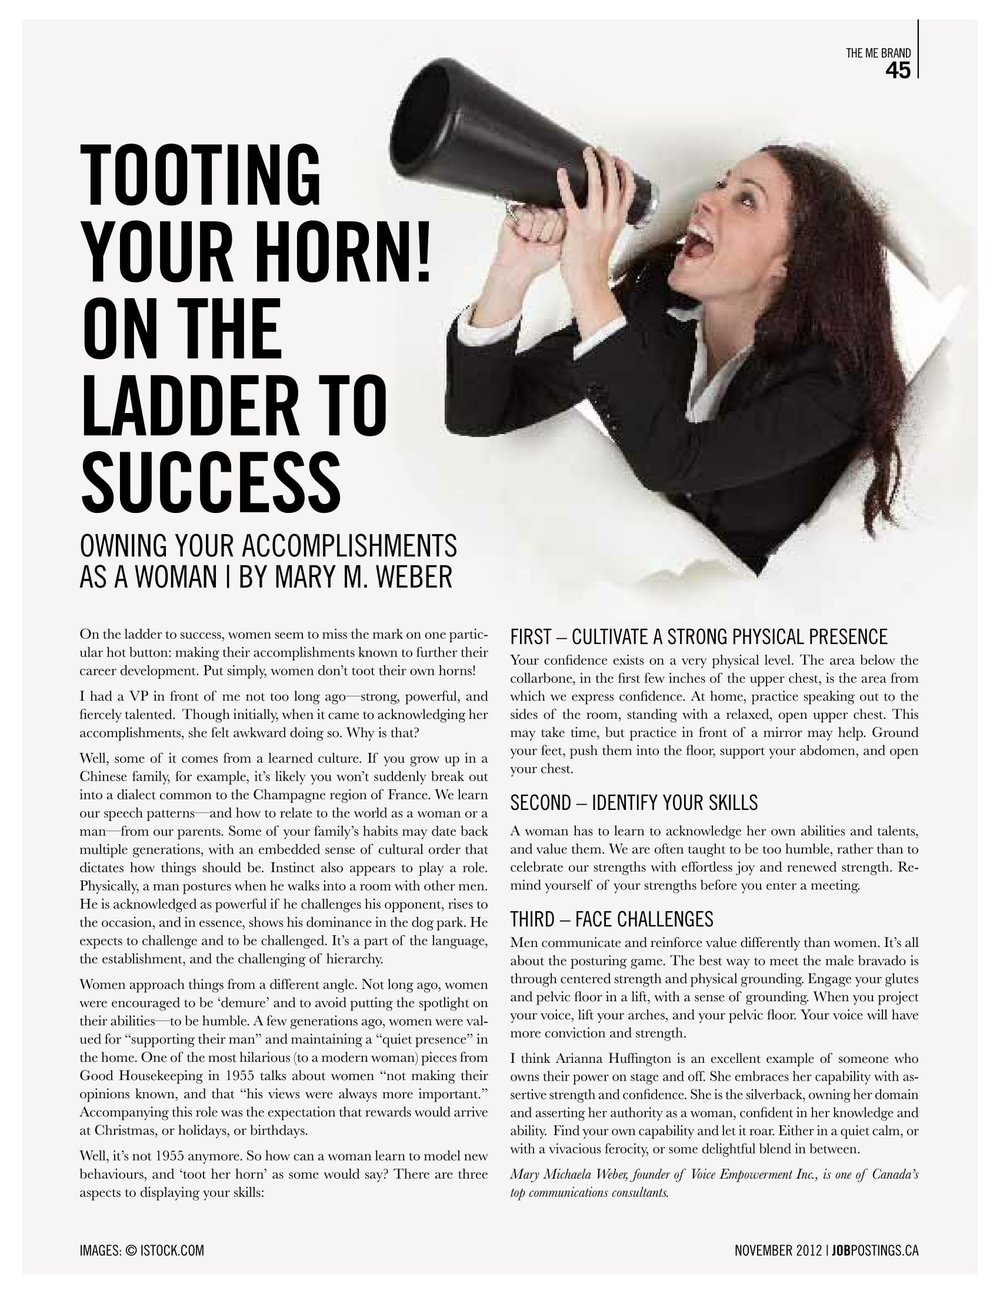 Tooting Your Horn! On The Ladder To Success:Owning Your Accomplishments as a Woman - November 2012The Me Brand - Page 45